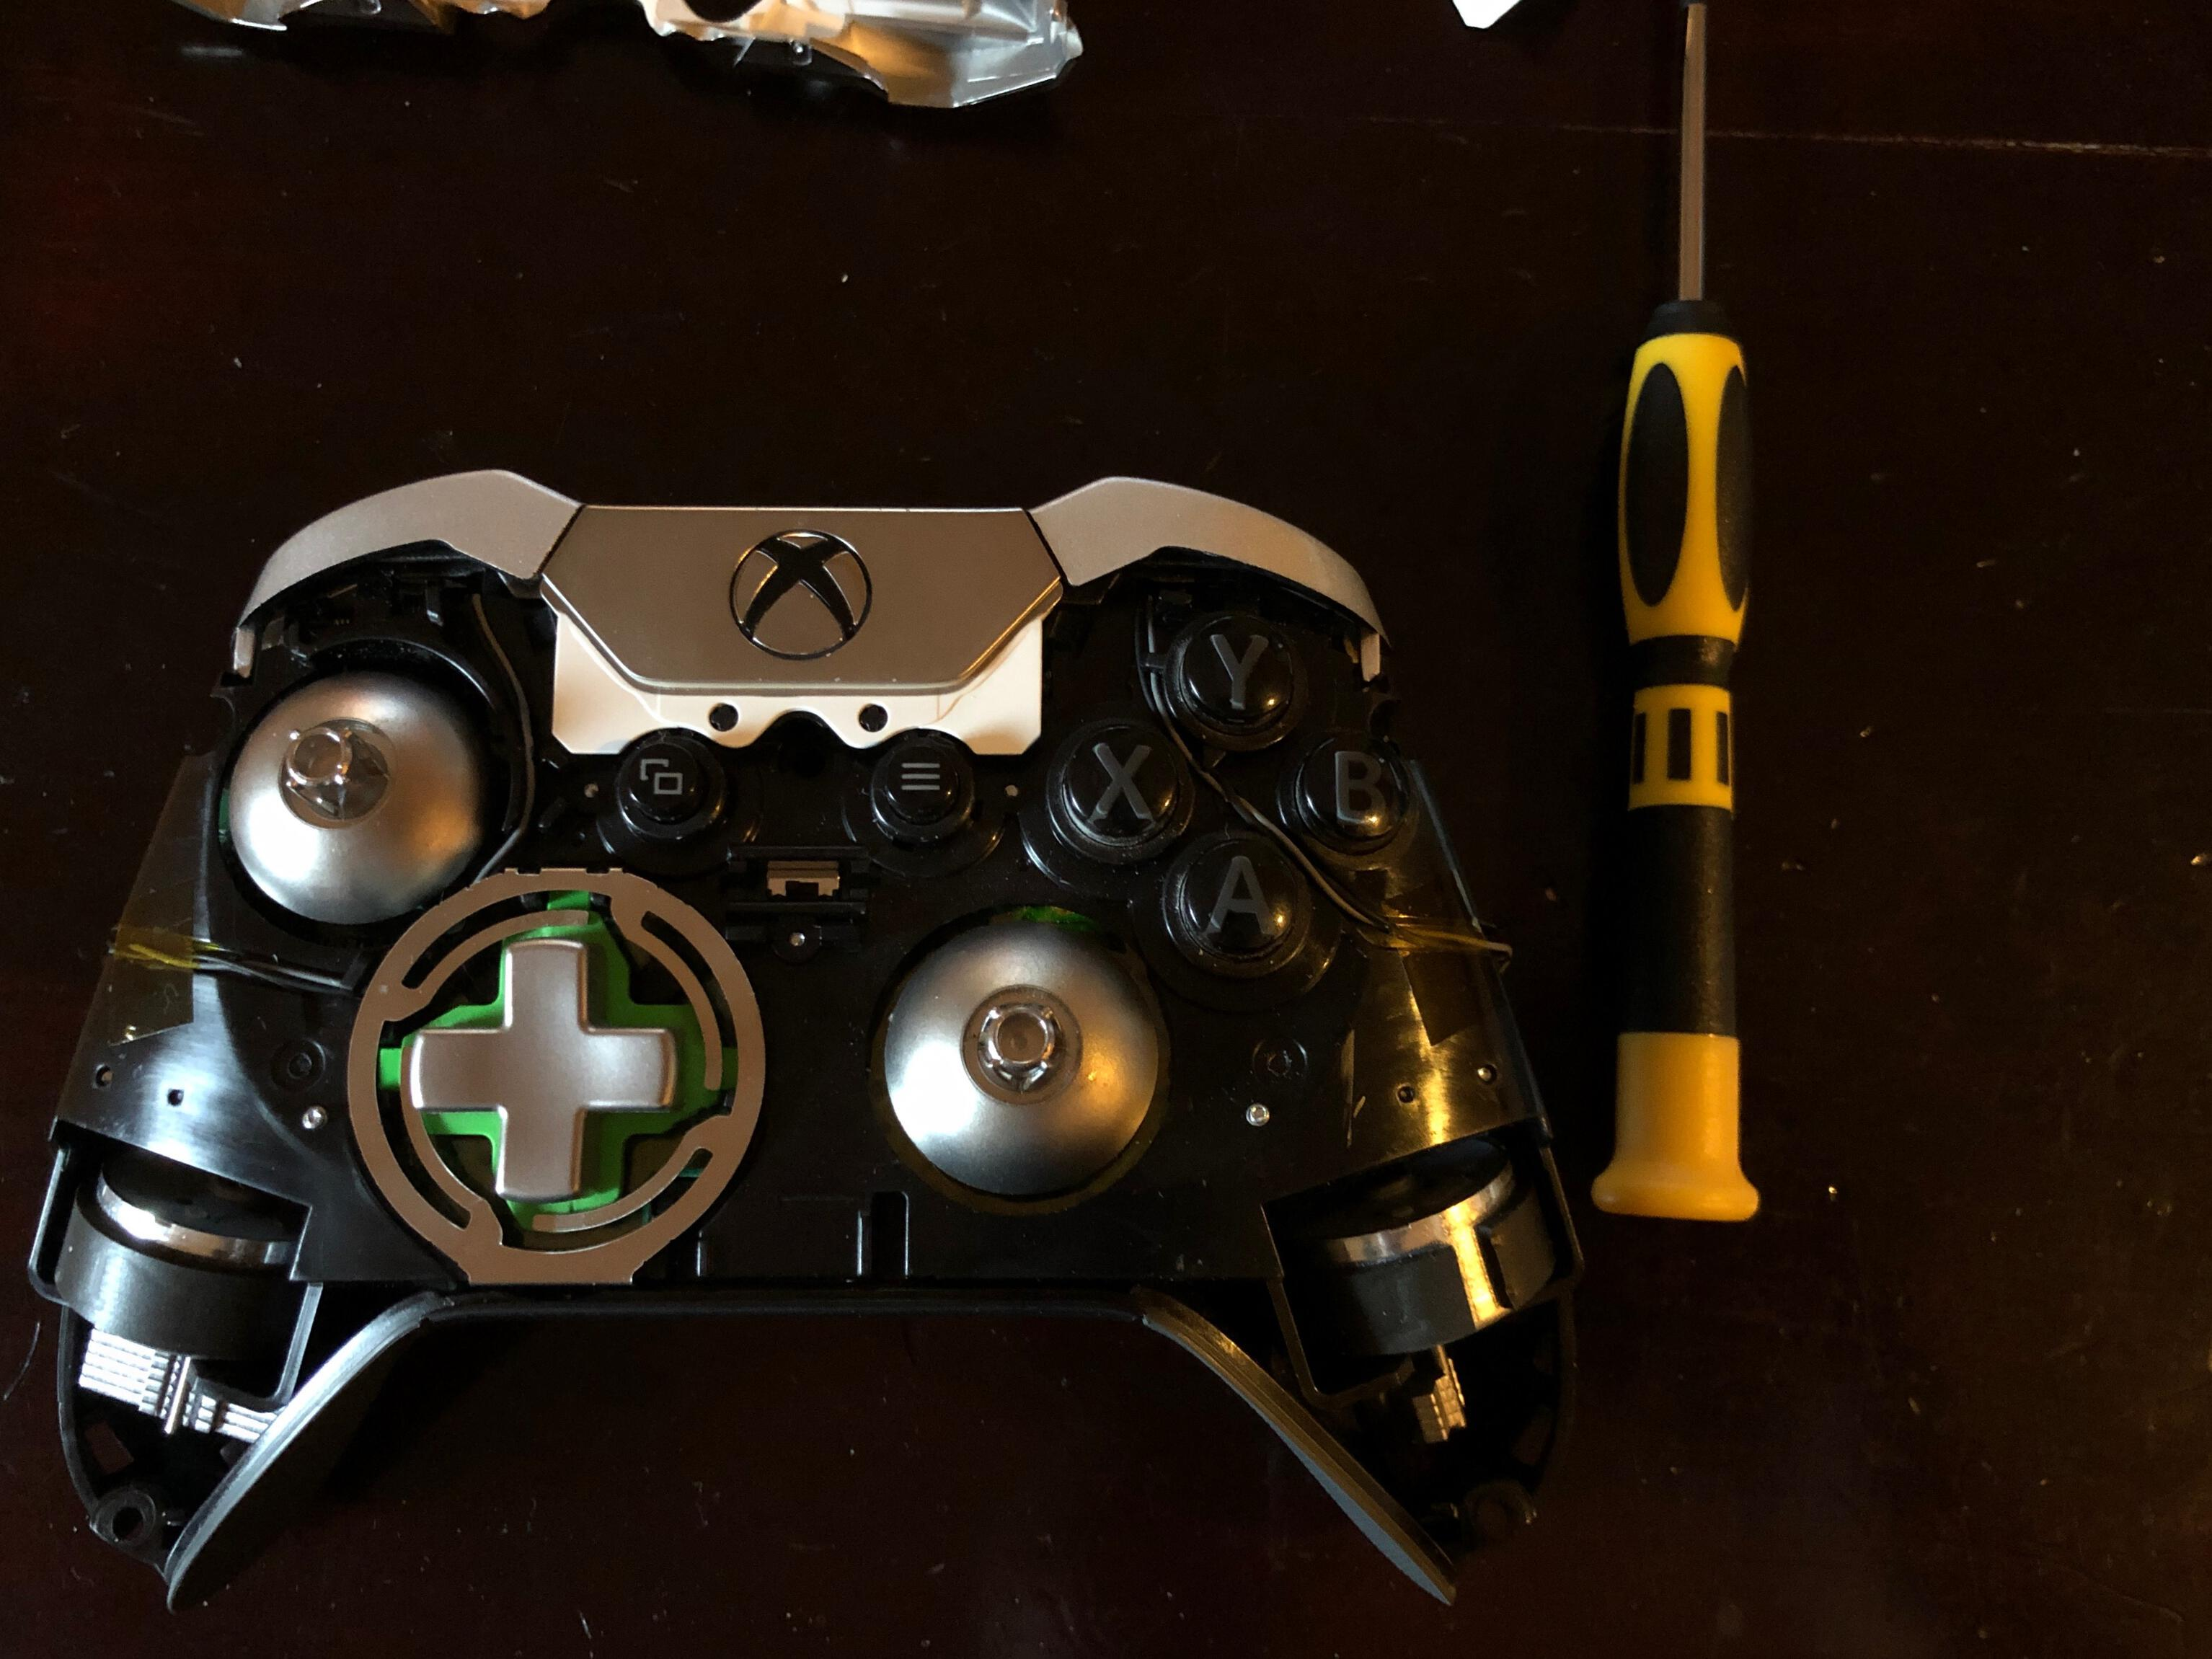 Photo of a game controller with top shell removed to expose internal mechanisms.